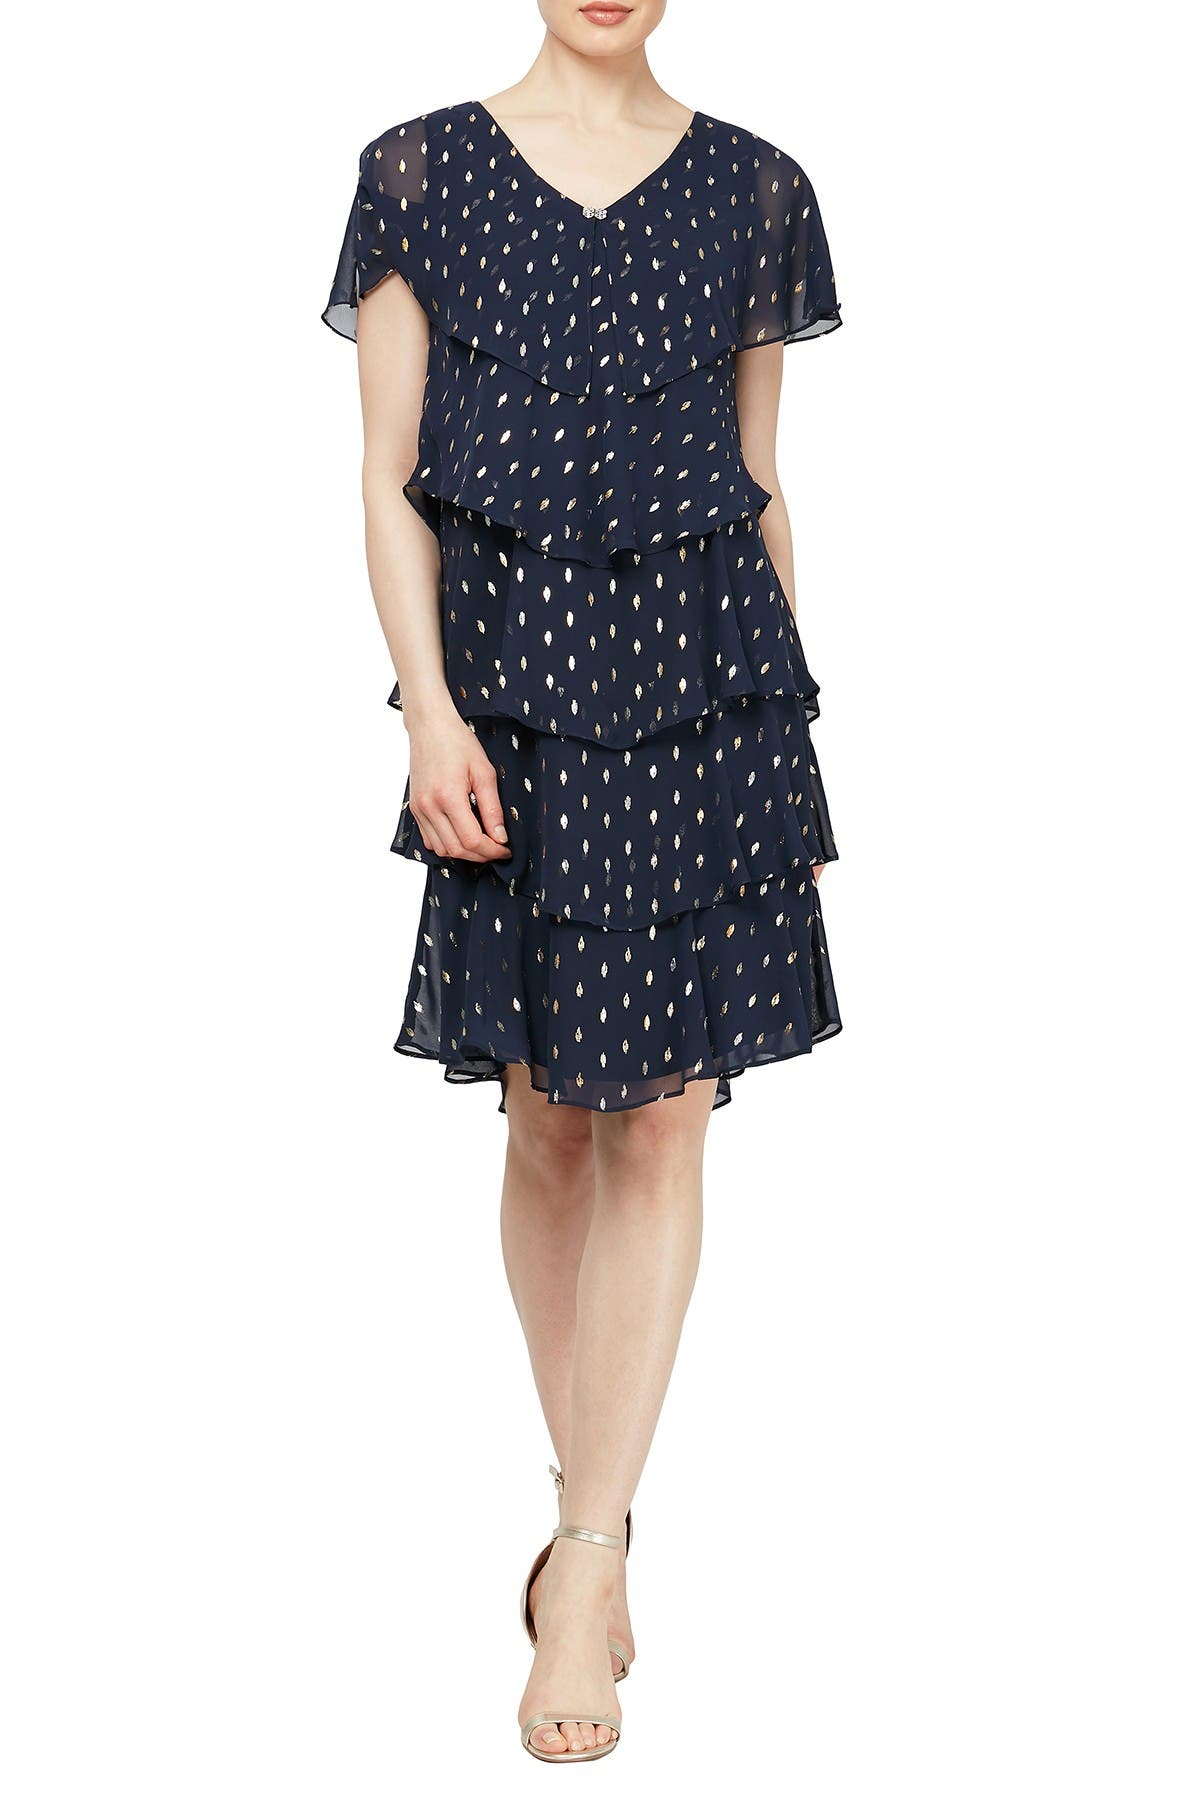 Image of SL Fashions Polka Dot Tiered Georgette Dress